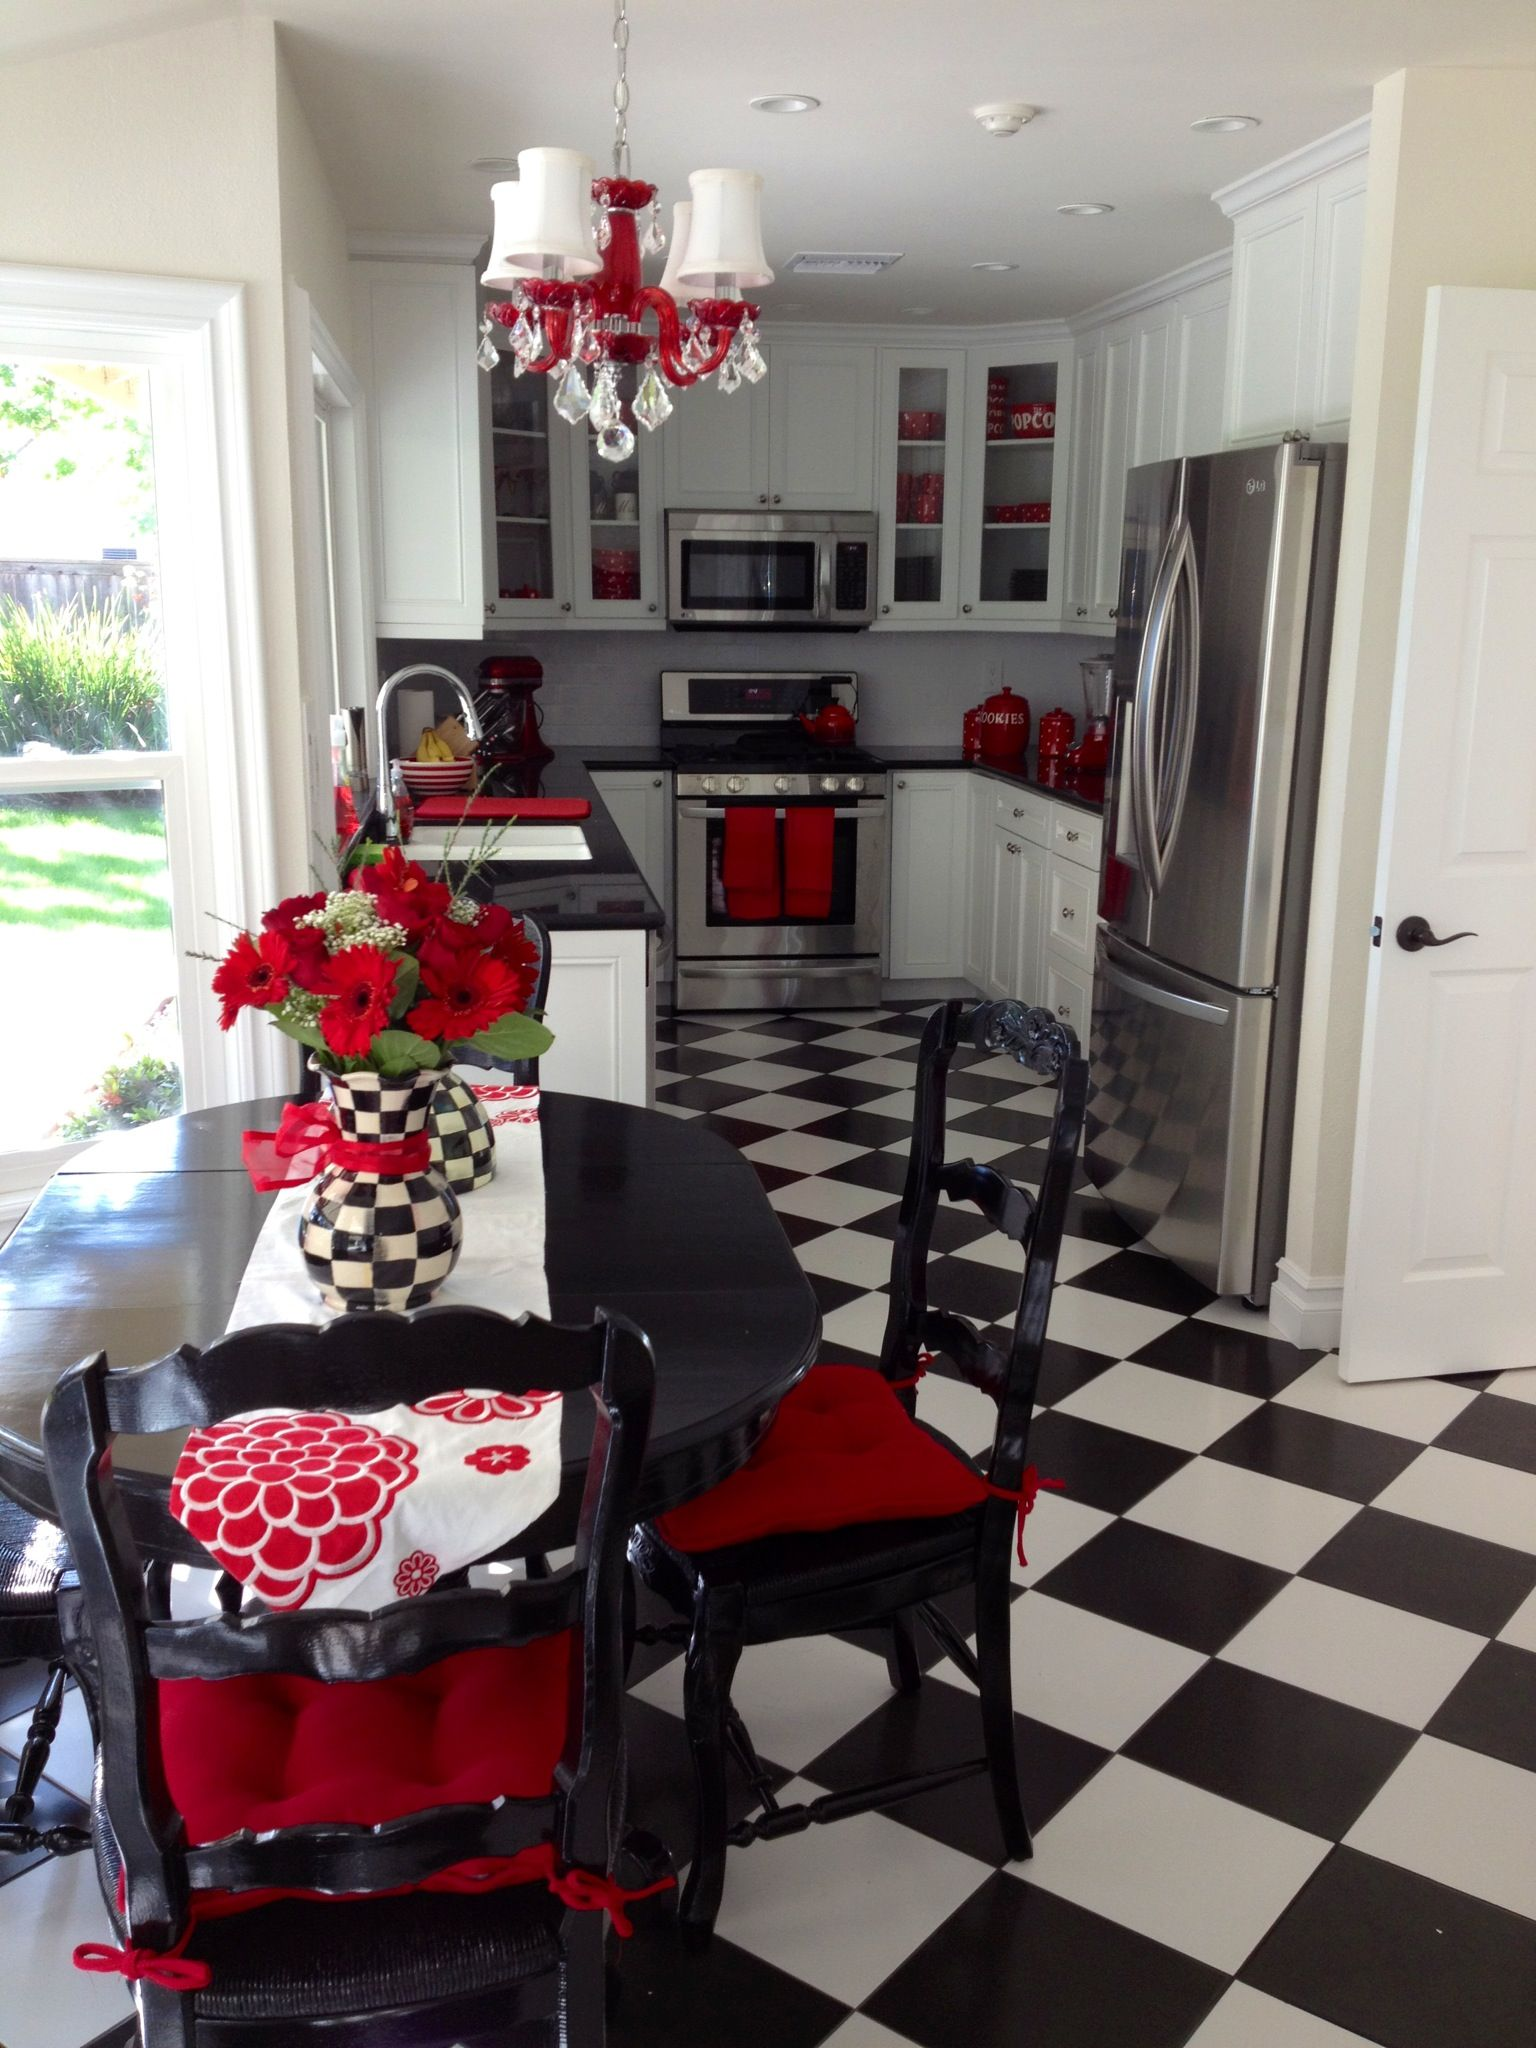 Checkerboard Kitchen Floor My Fun And Unique Black And White Kitchen With Red Accents And A